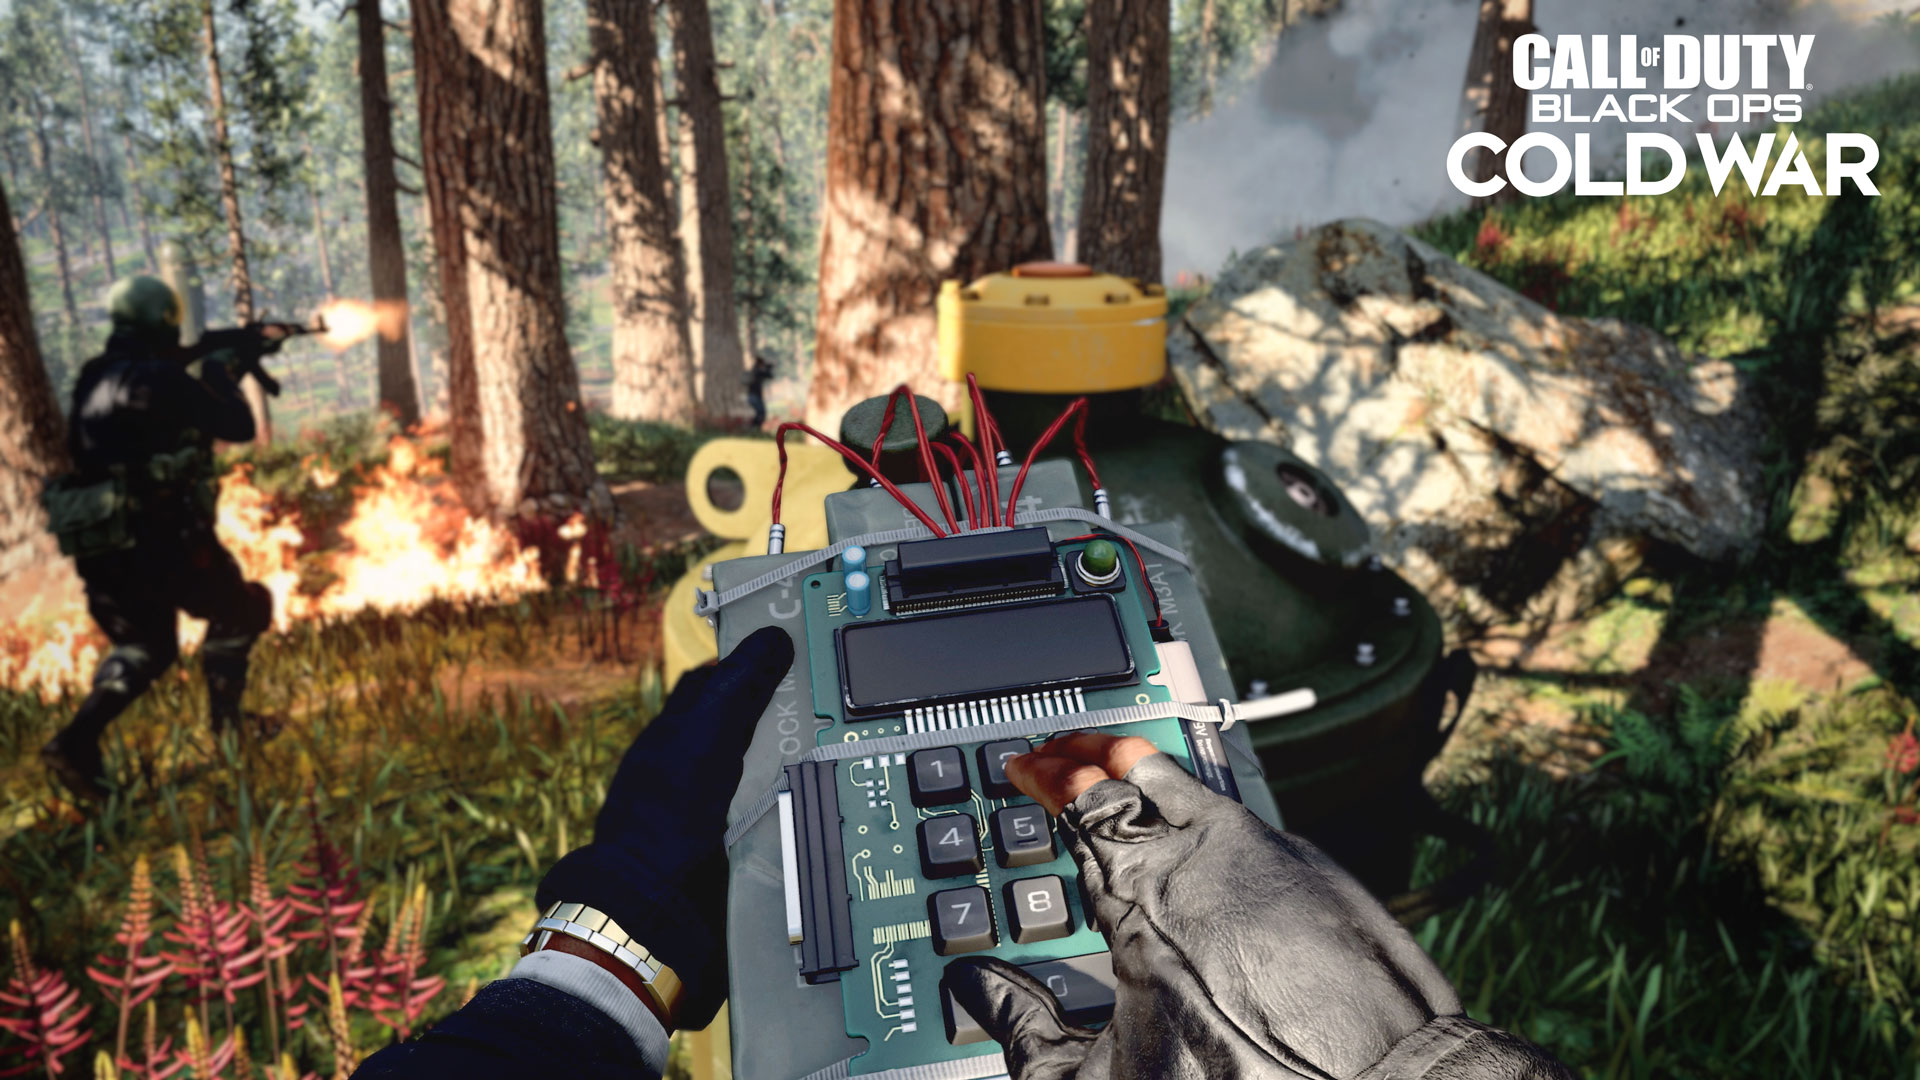 Call of Duty: Black Ops Cold War – Set It Off With The Crossplay Beta & Fireteam: Dirty Bomb